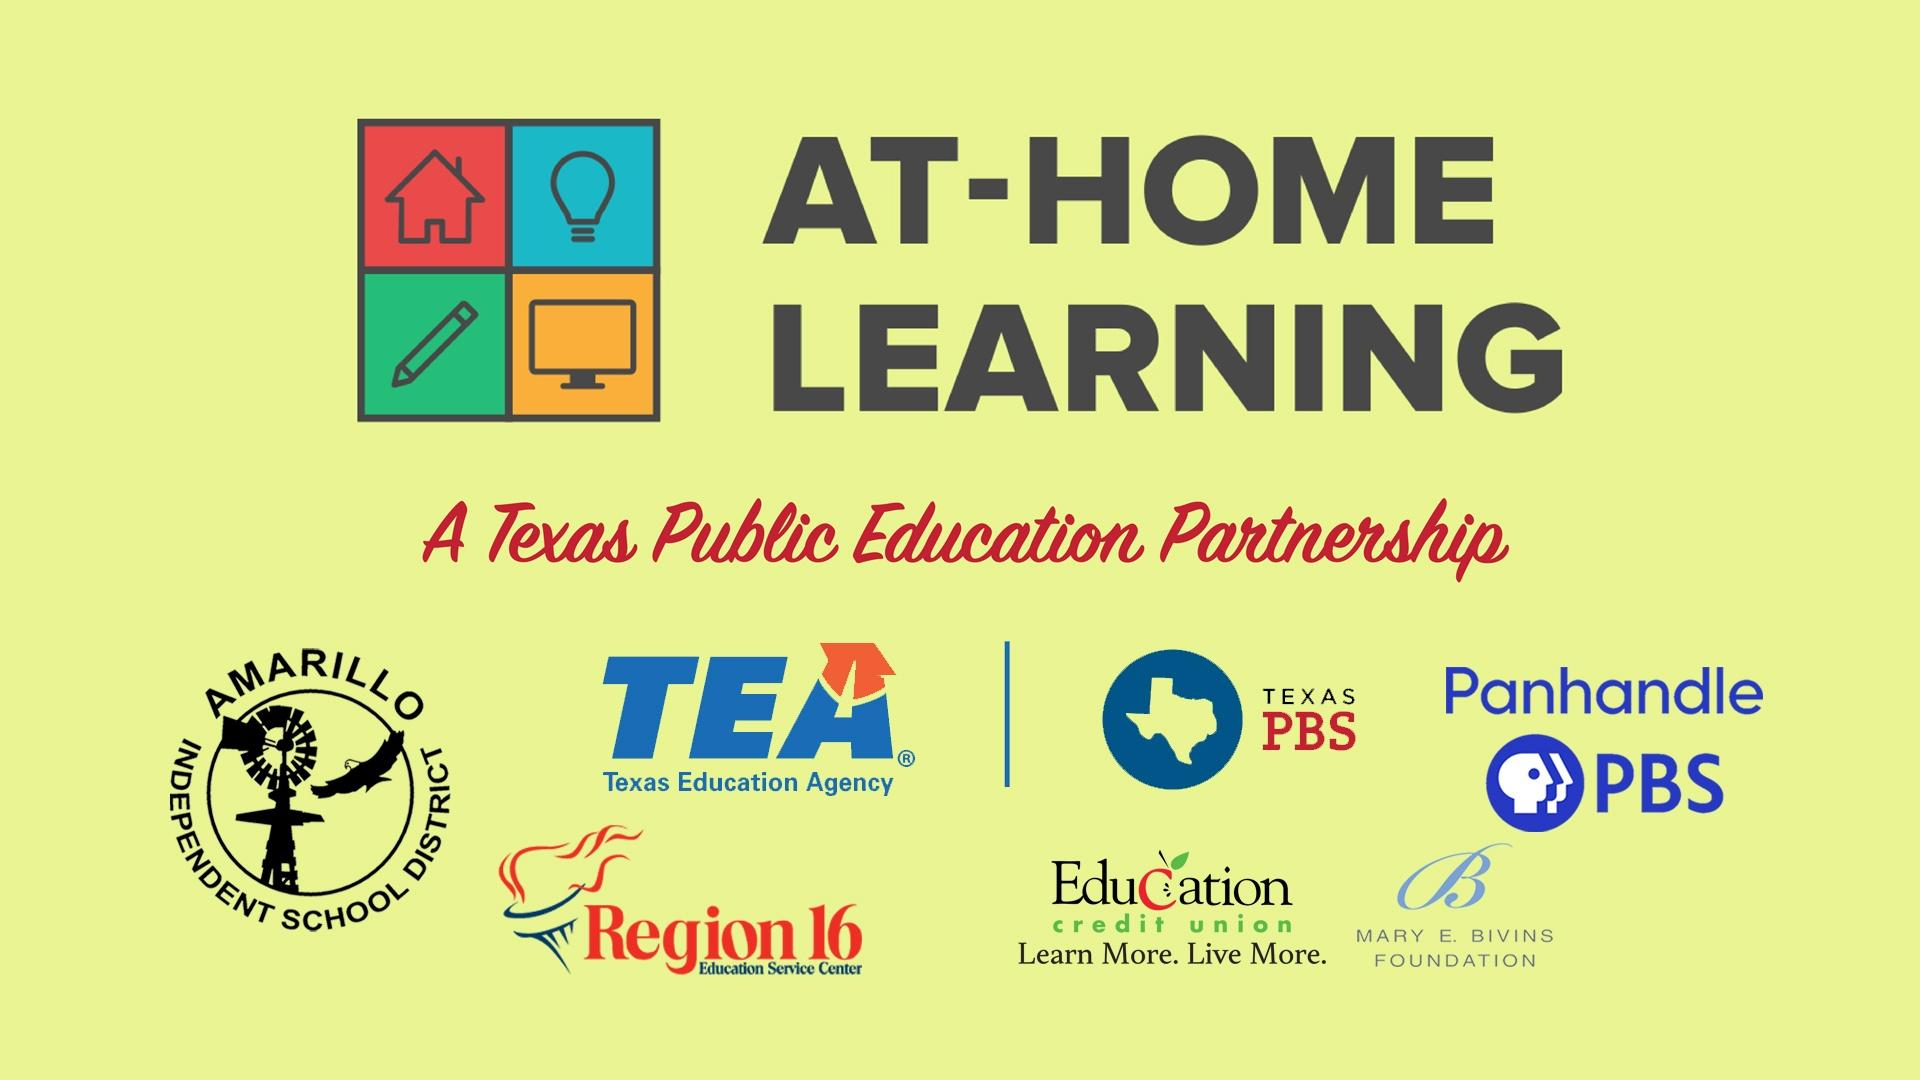 At Home Learning Resources from Panhandle PBS